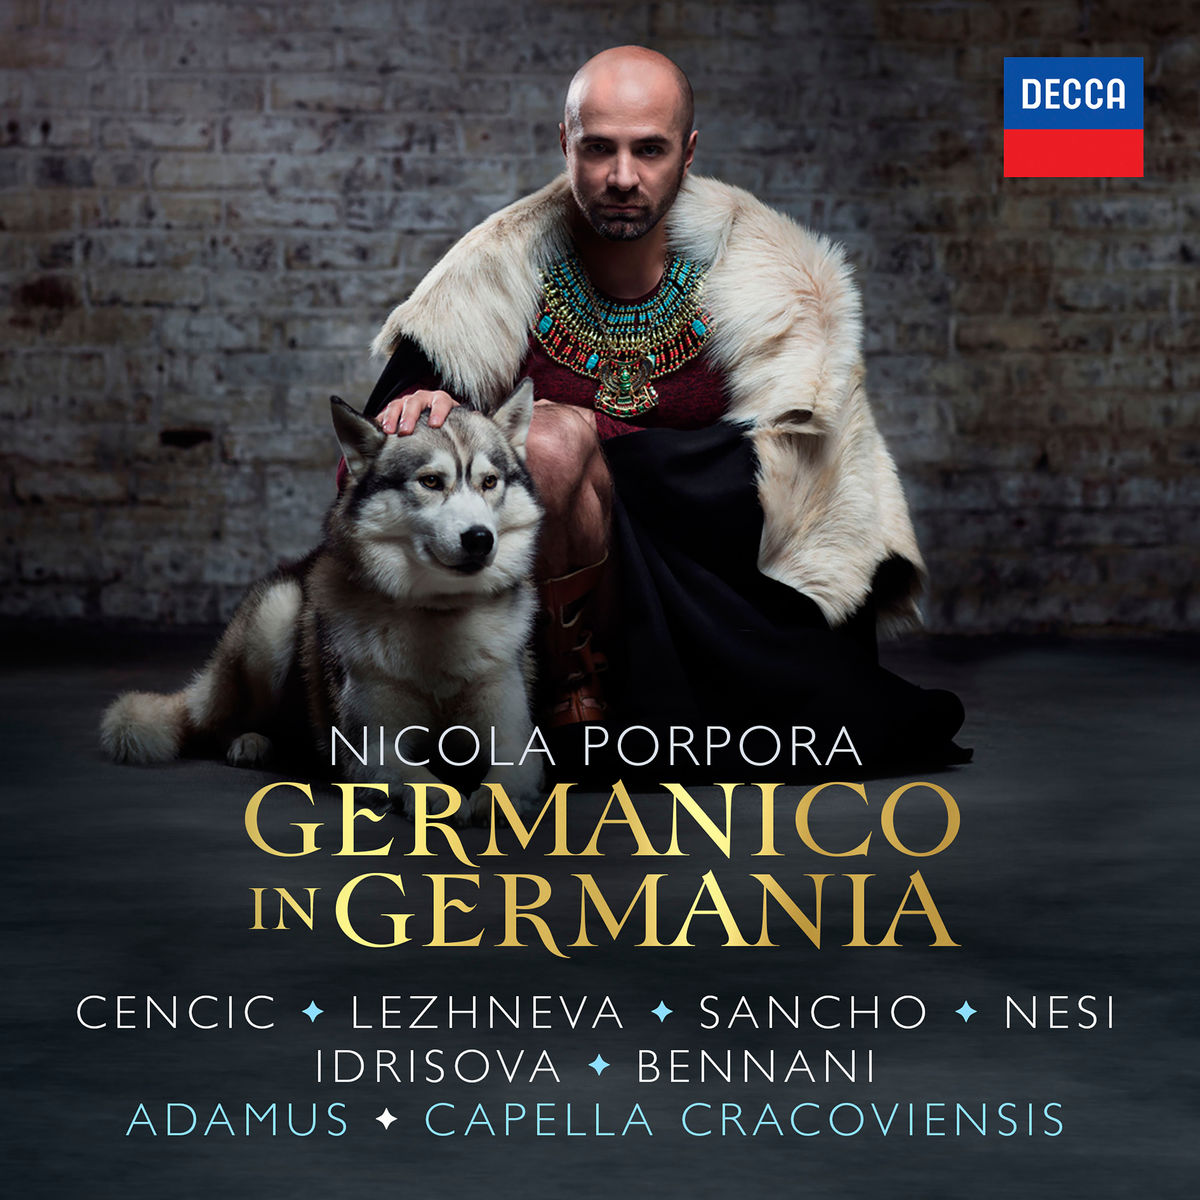 IN REVIEW: Nicola Antonio Porpora - GERMANICO IN GERMANIA (DECCA 483 1523)